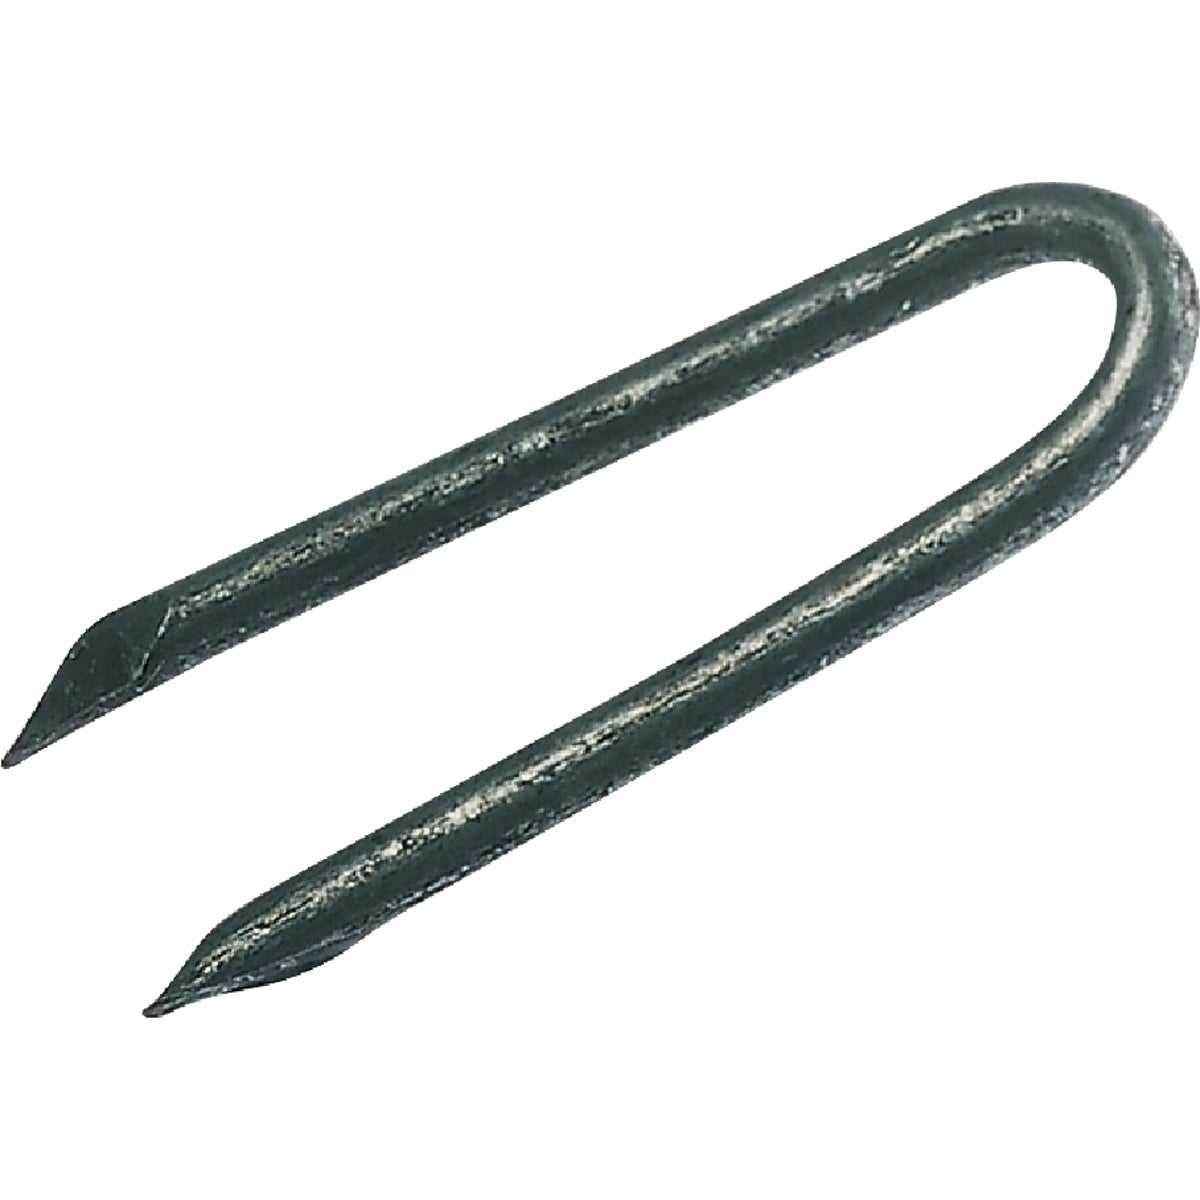 "1LB HDG 3/4"" STAPLE - 720722 by Primesource"